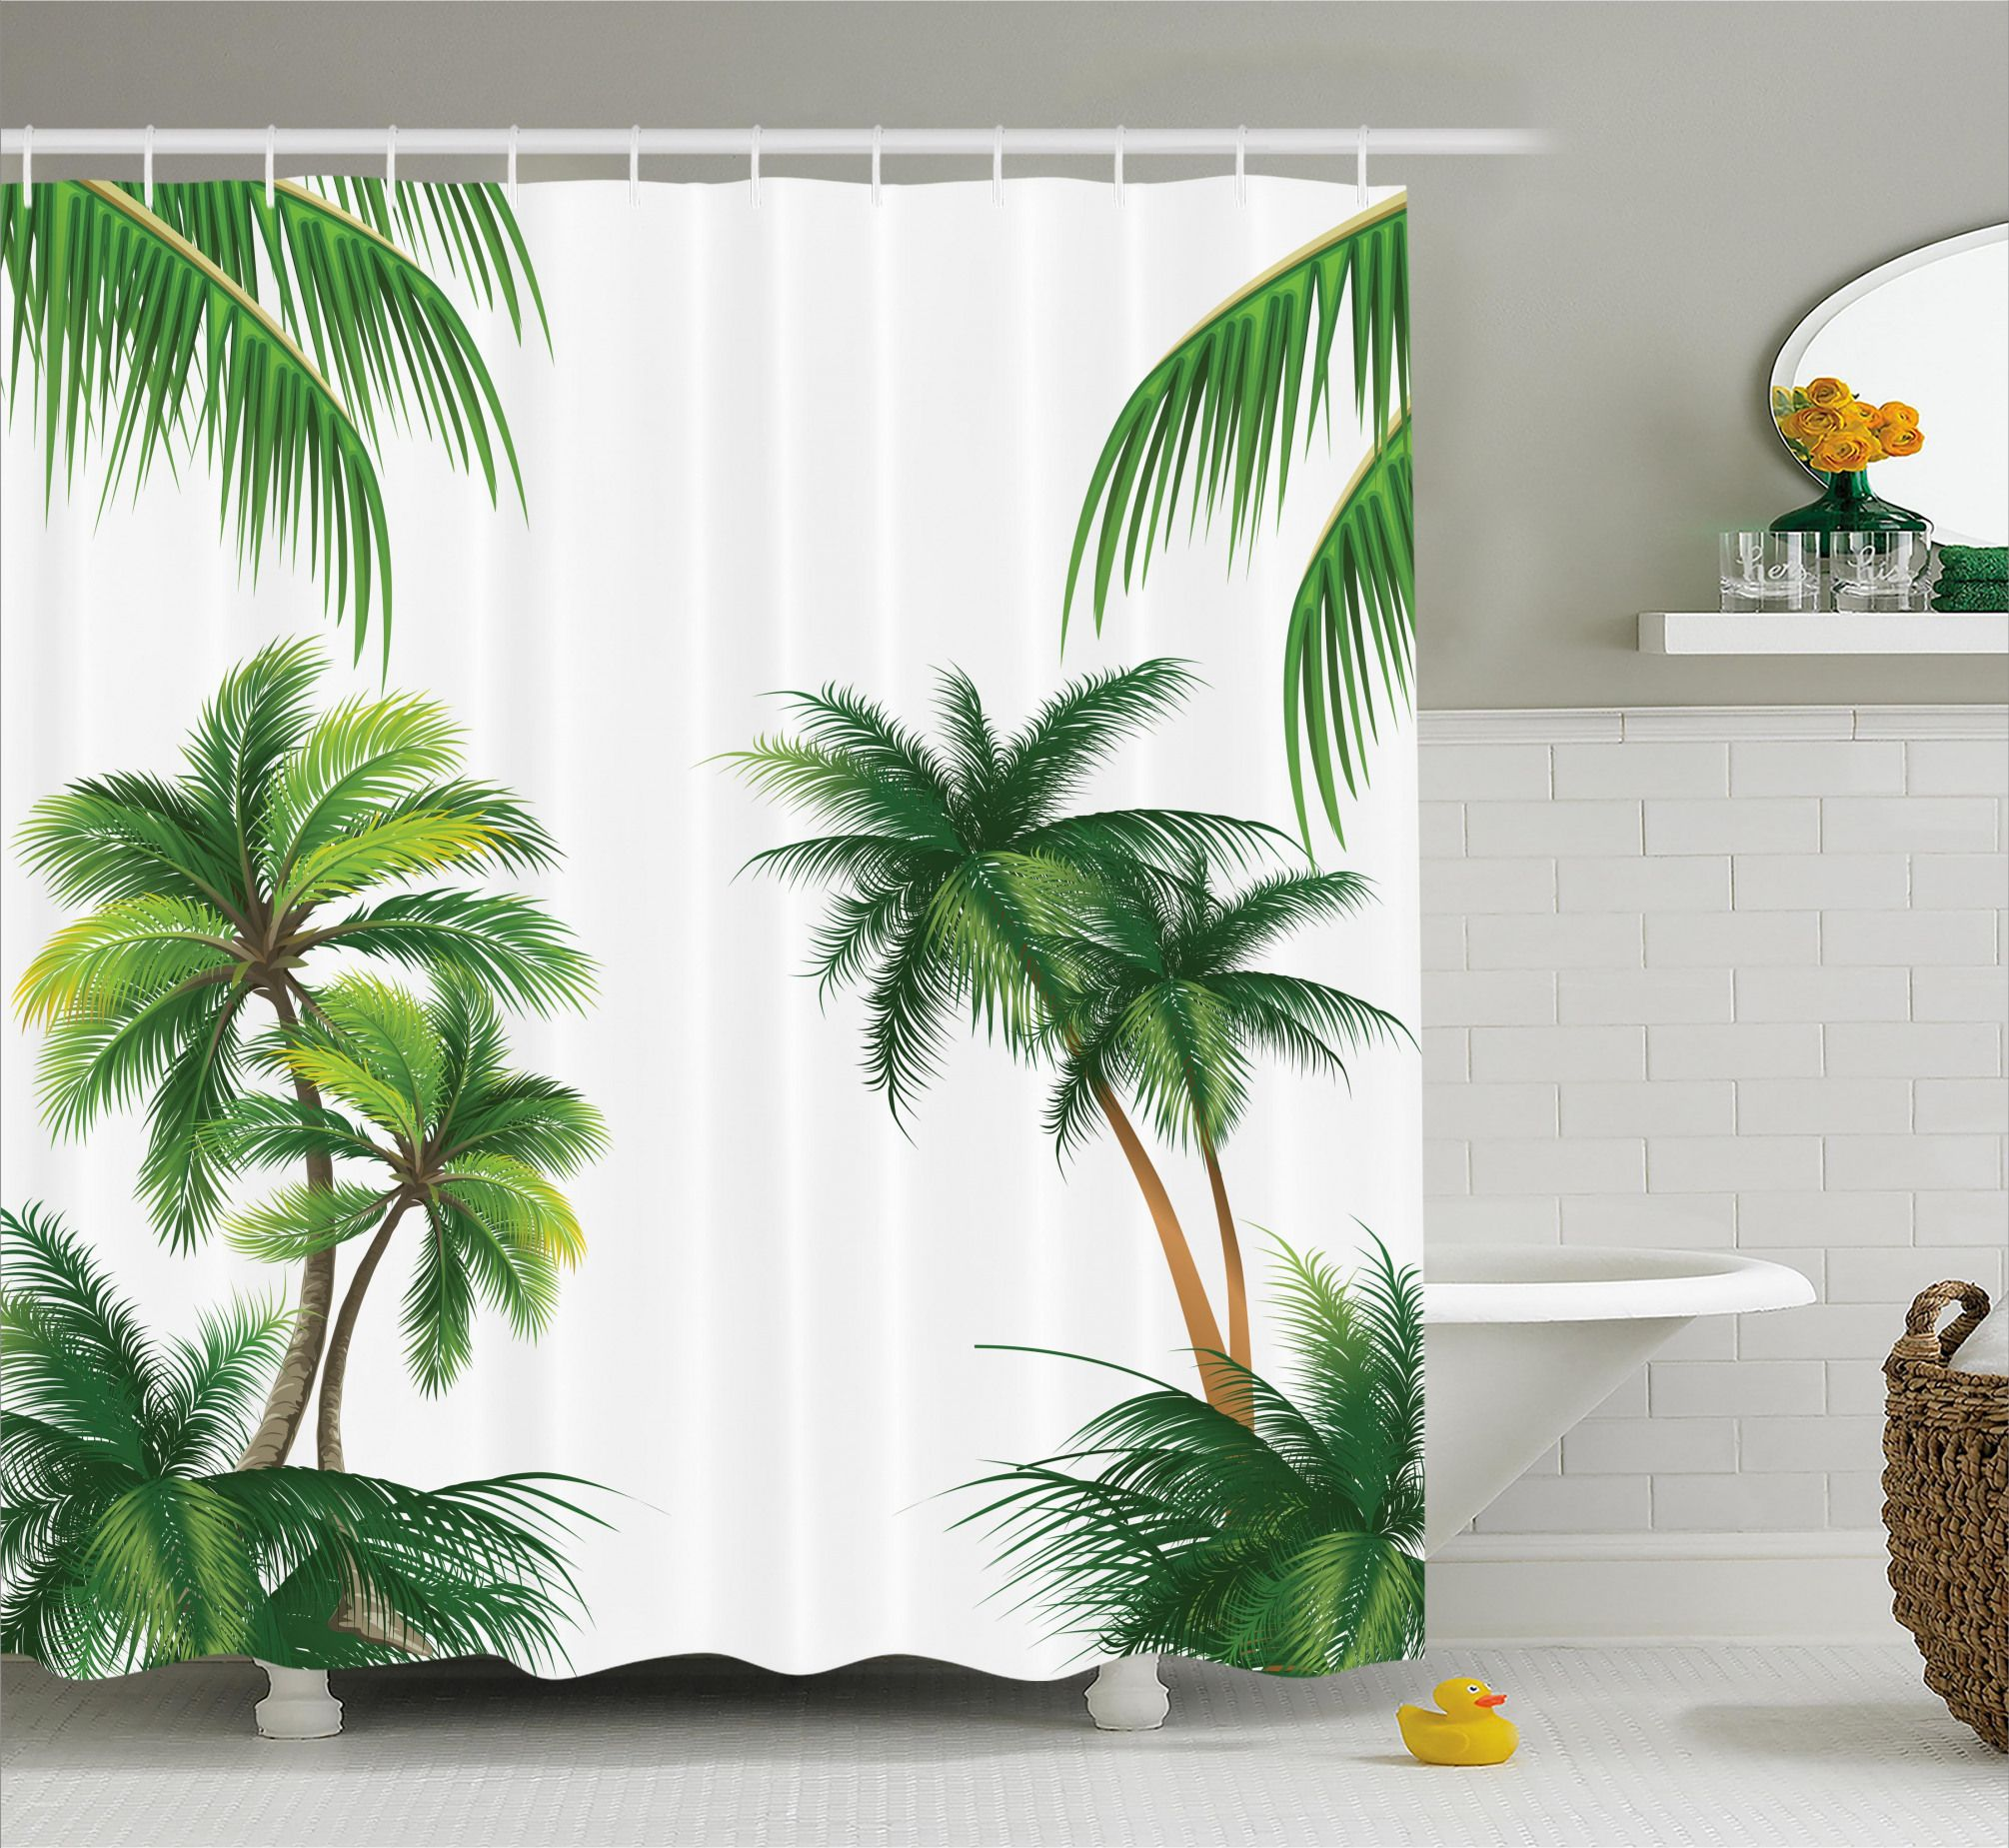 Coconut Palm Tree Plants Shower Curtain Tropical Shower Curtains